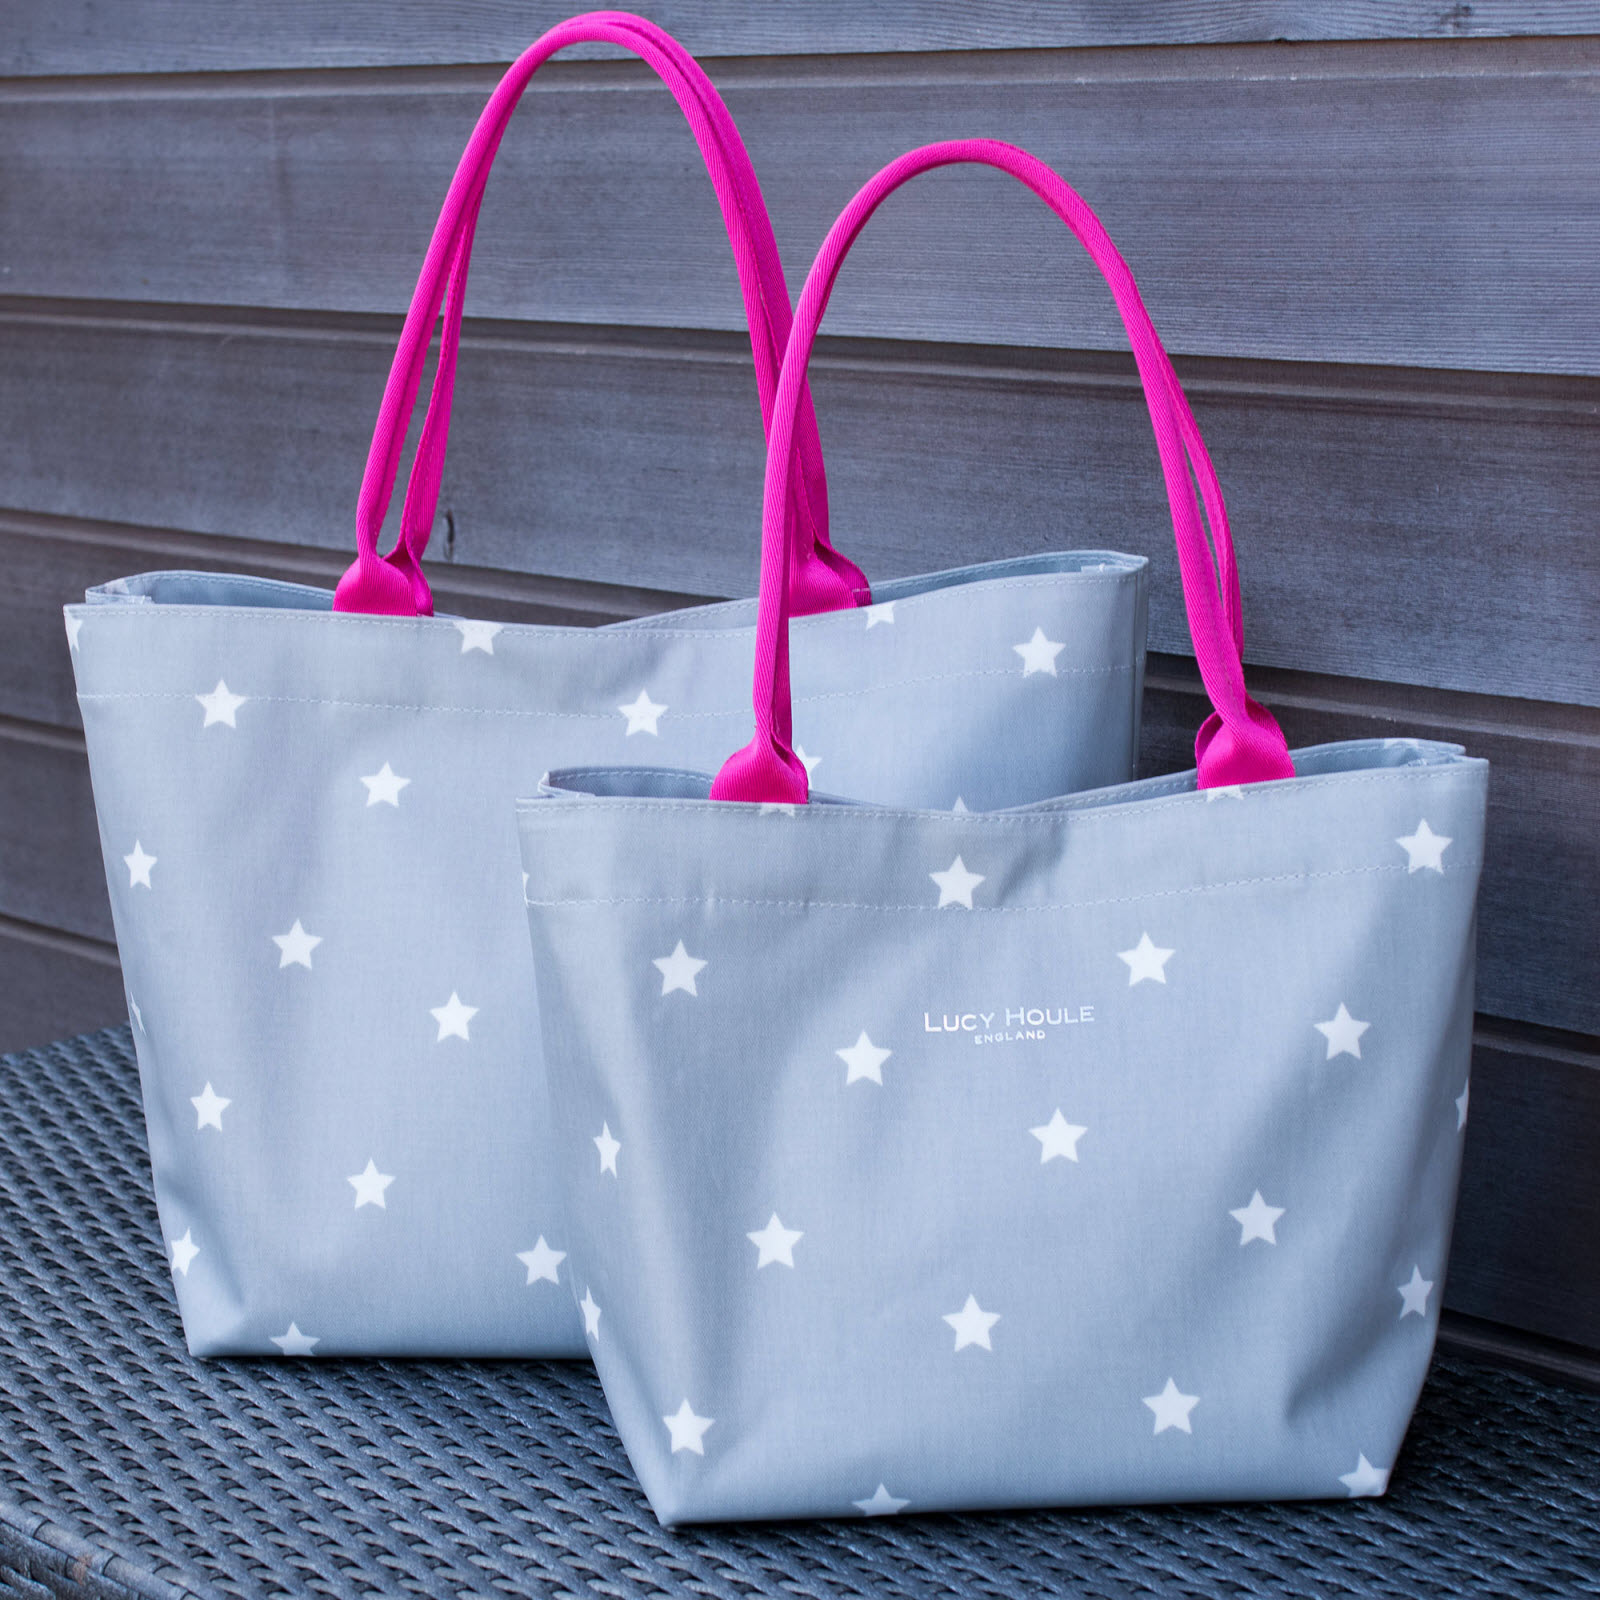 Grey & White Star Small Tote Bag & Pink handles